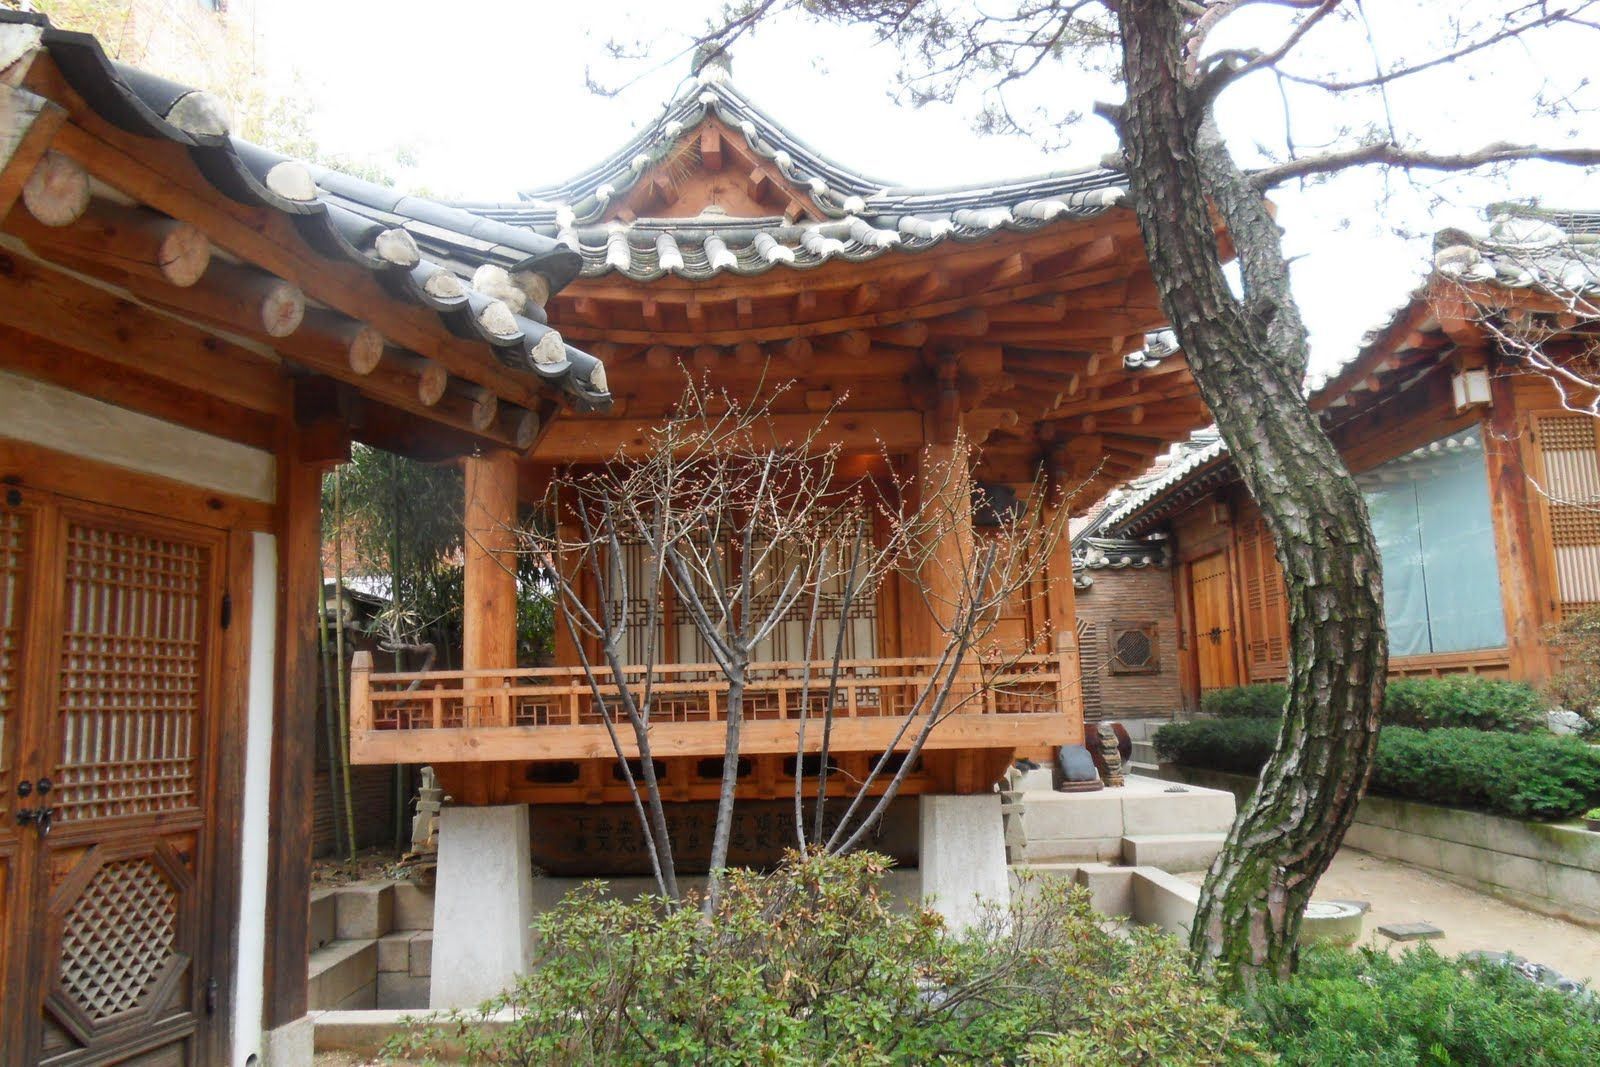 ^ 1000+ images about Hanok Homes on Pinterest raditional, ditor ...